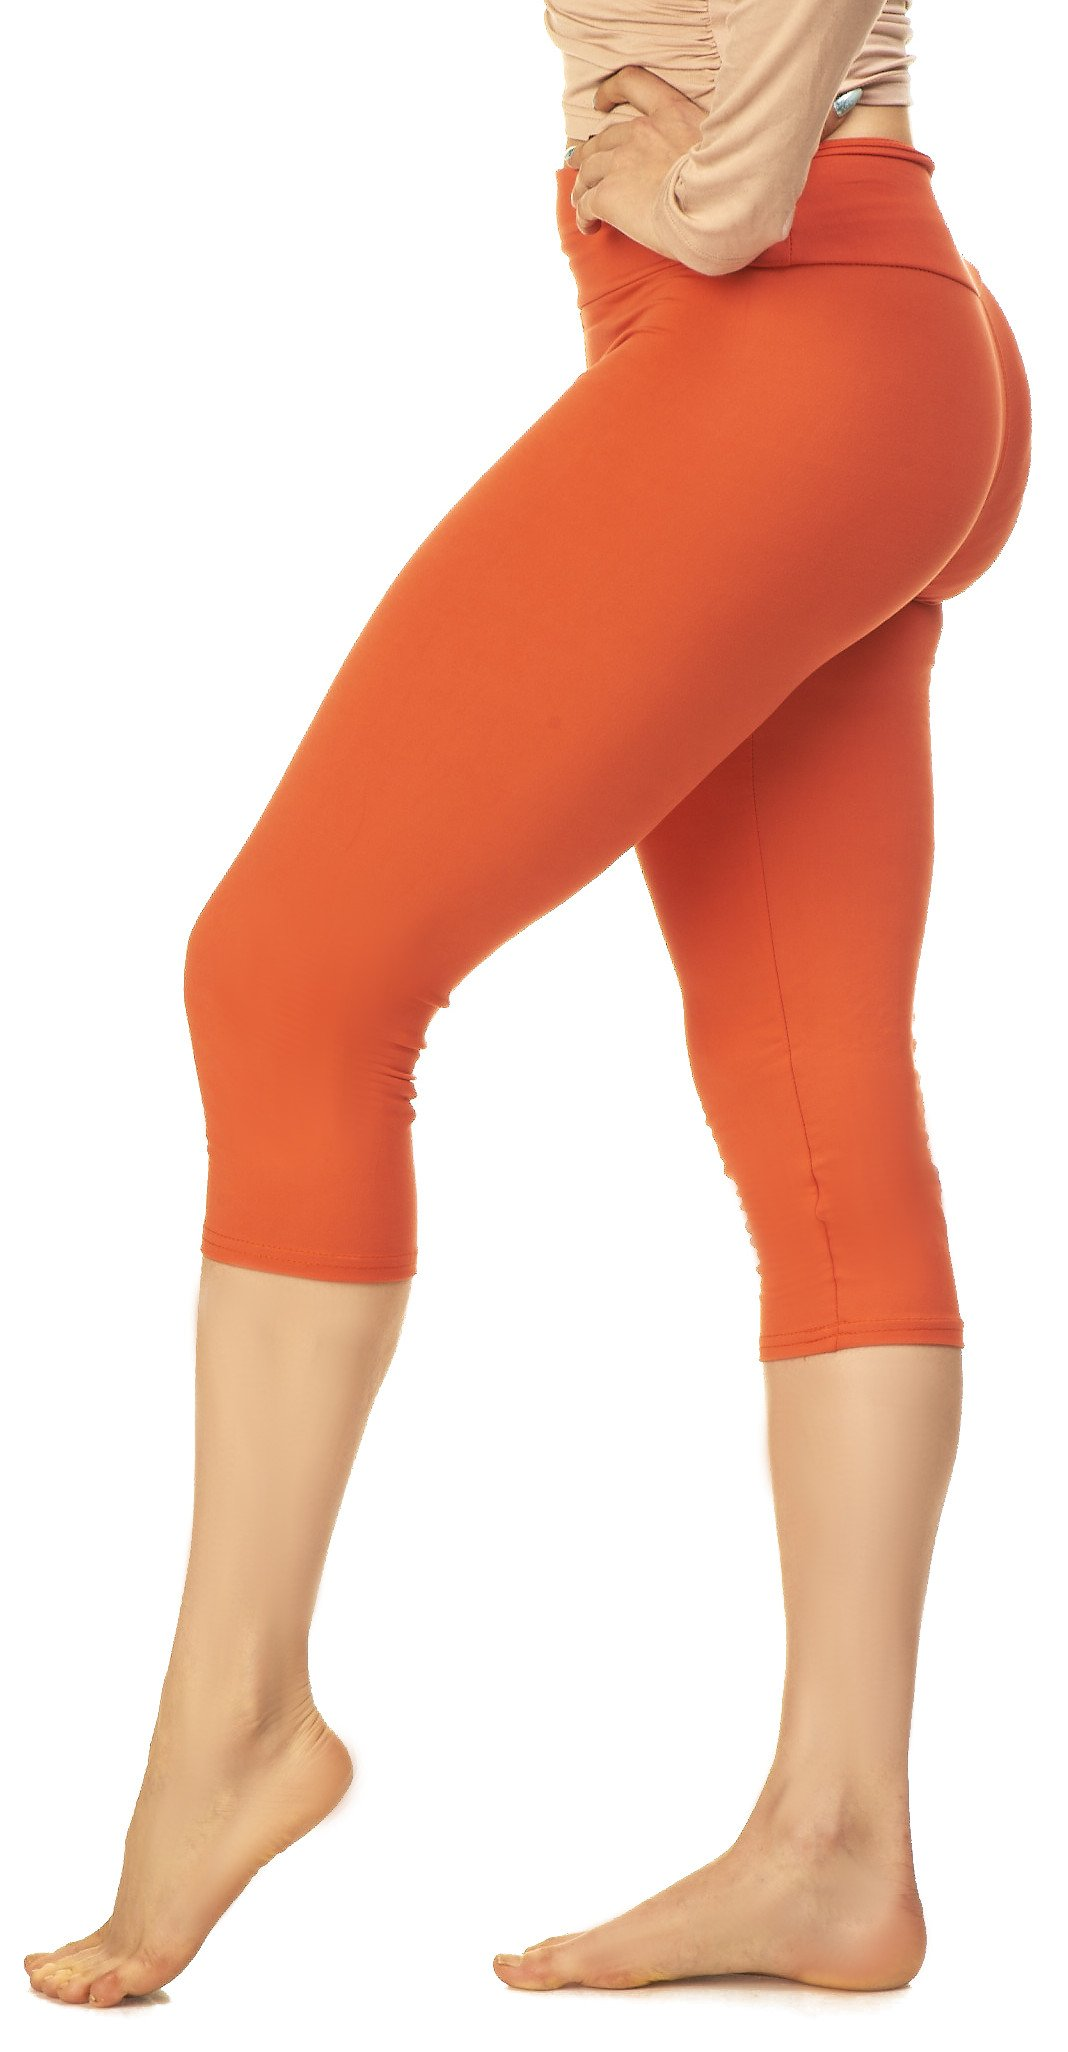 Lush Moda Women's Basic Capri Leggings with Yoga Waist- Extra Soft and Variety of Colors - Bright Orange